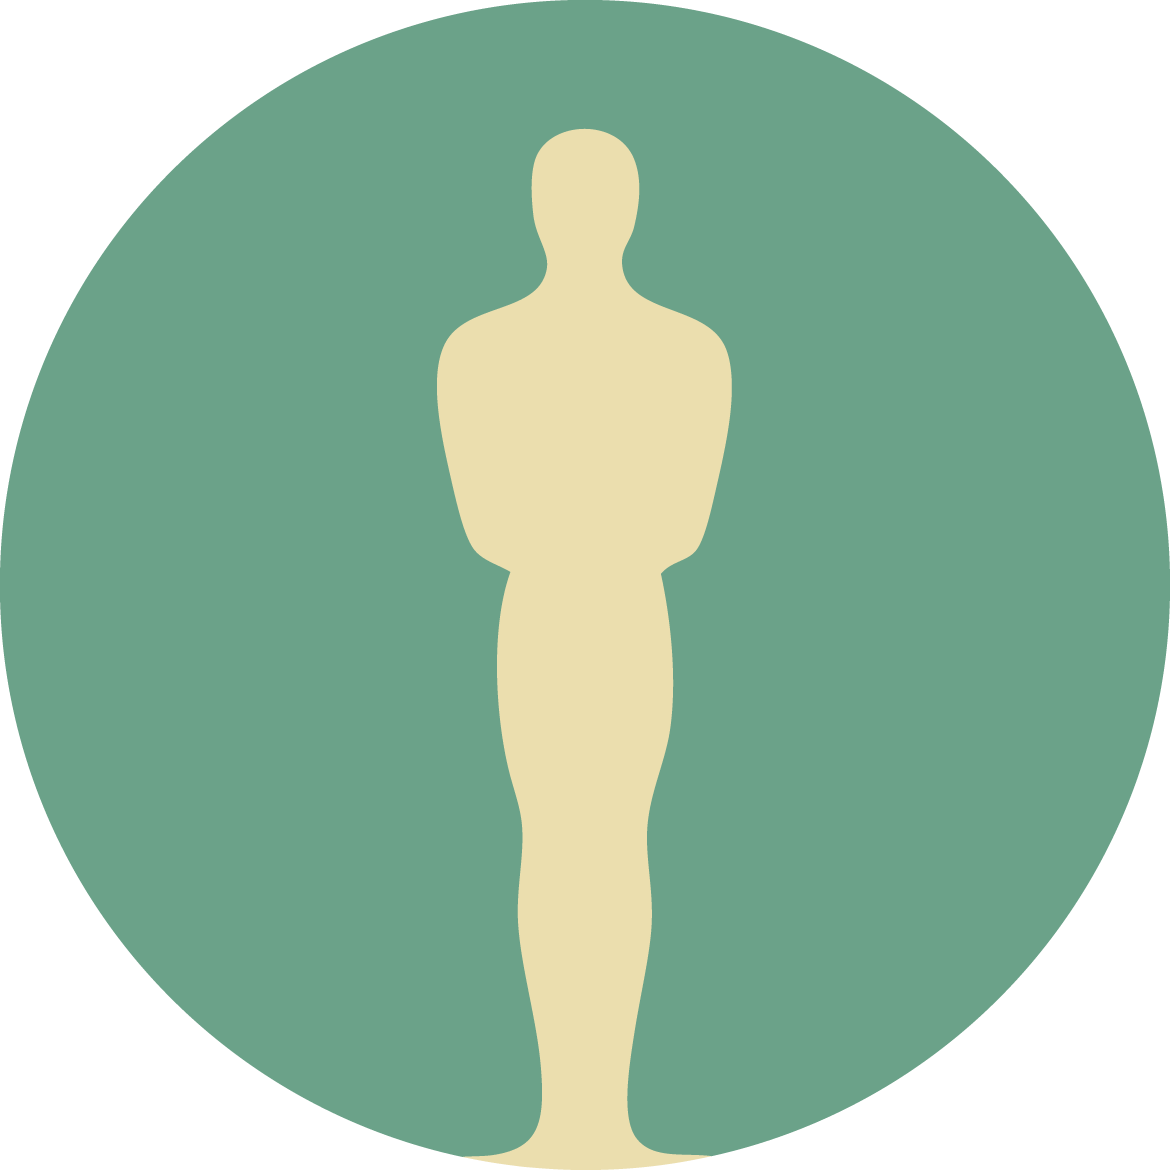 Academy Award Best Picture Nominees's icon